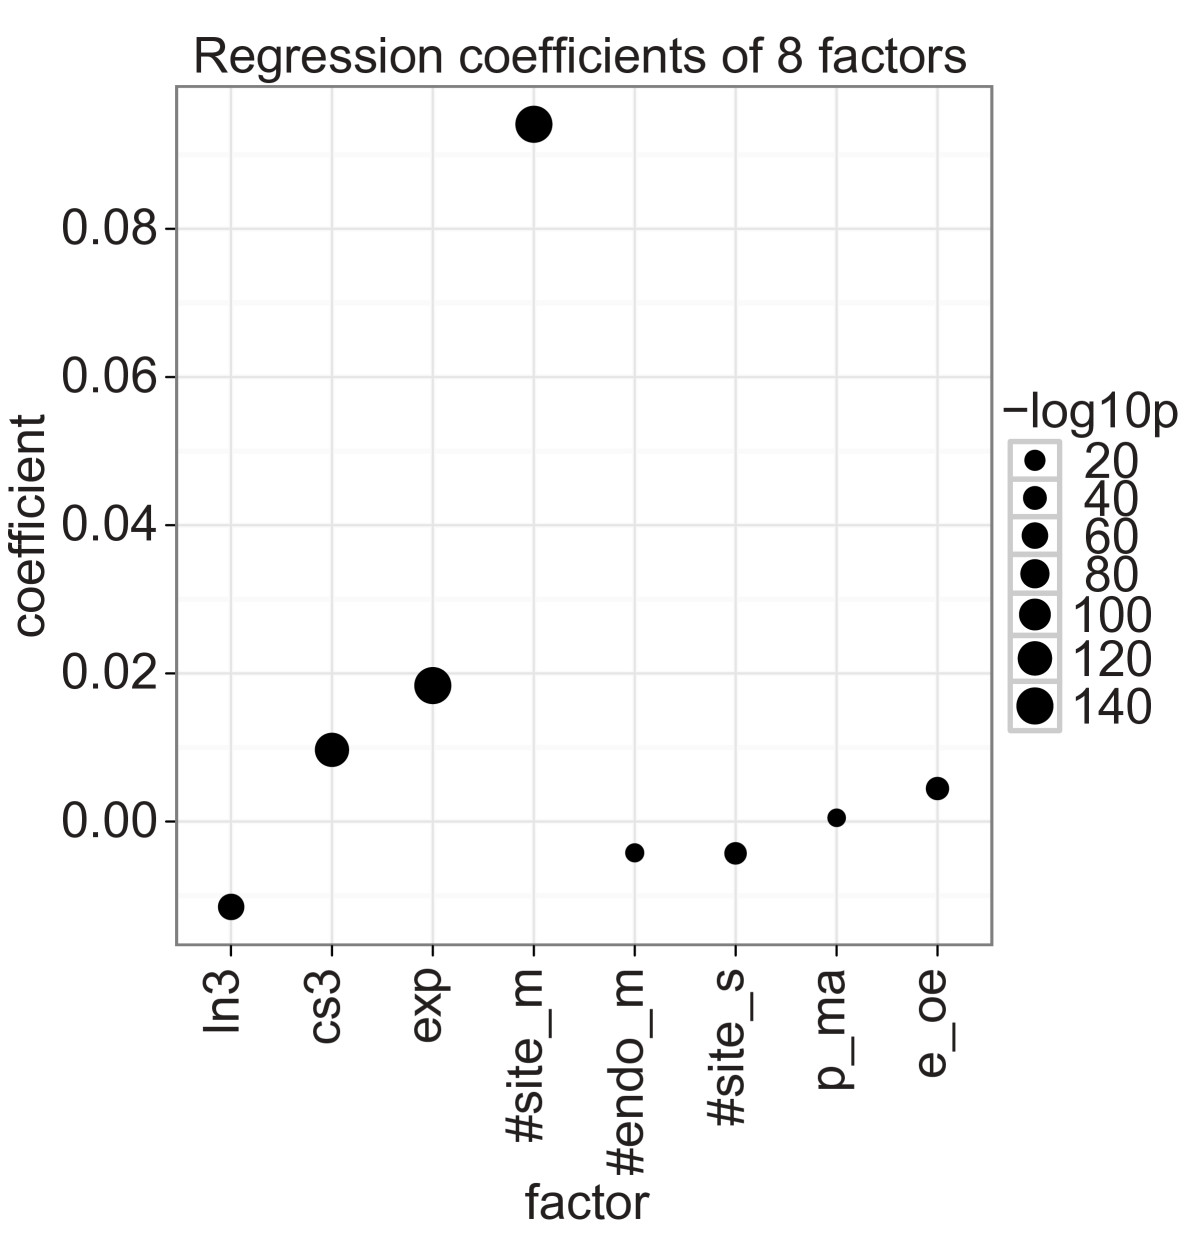 https://static-content.springer.com/image/art%3A10.1186%2F1758-907X-3-3/MediaObjects/13101_2011_Article_28_Fig5_HTML.jpg